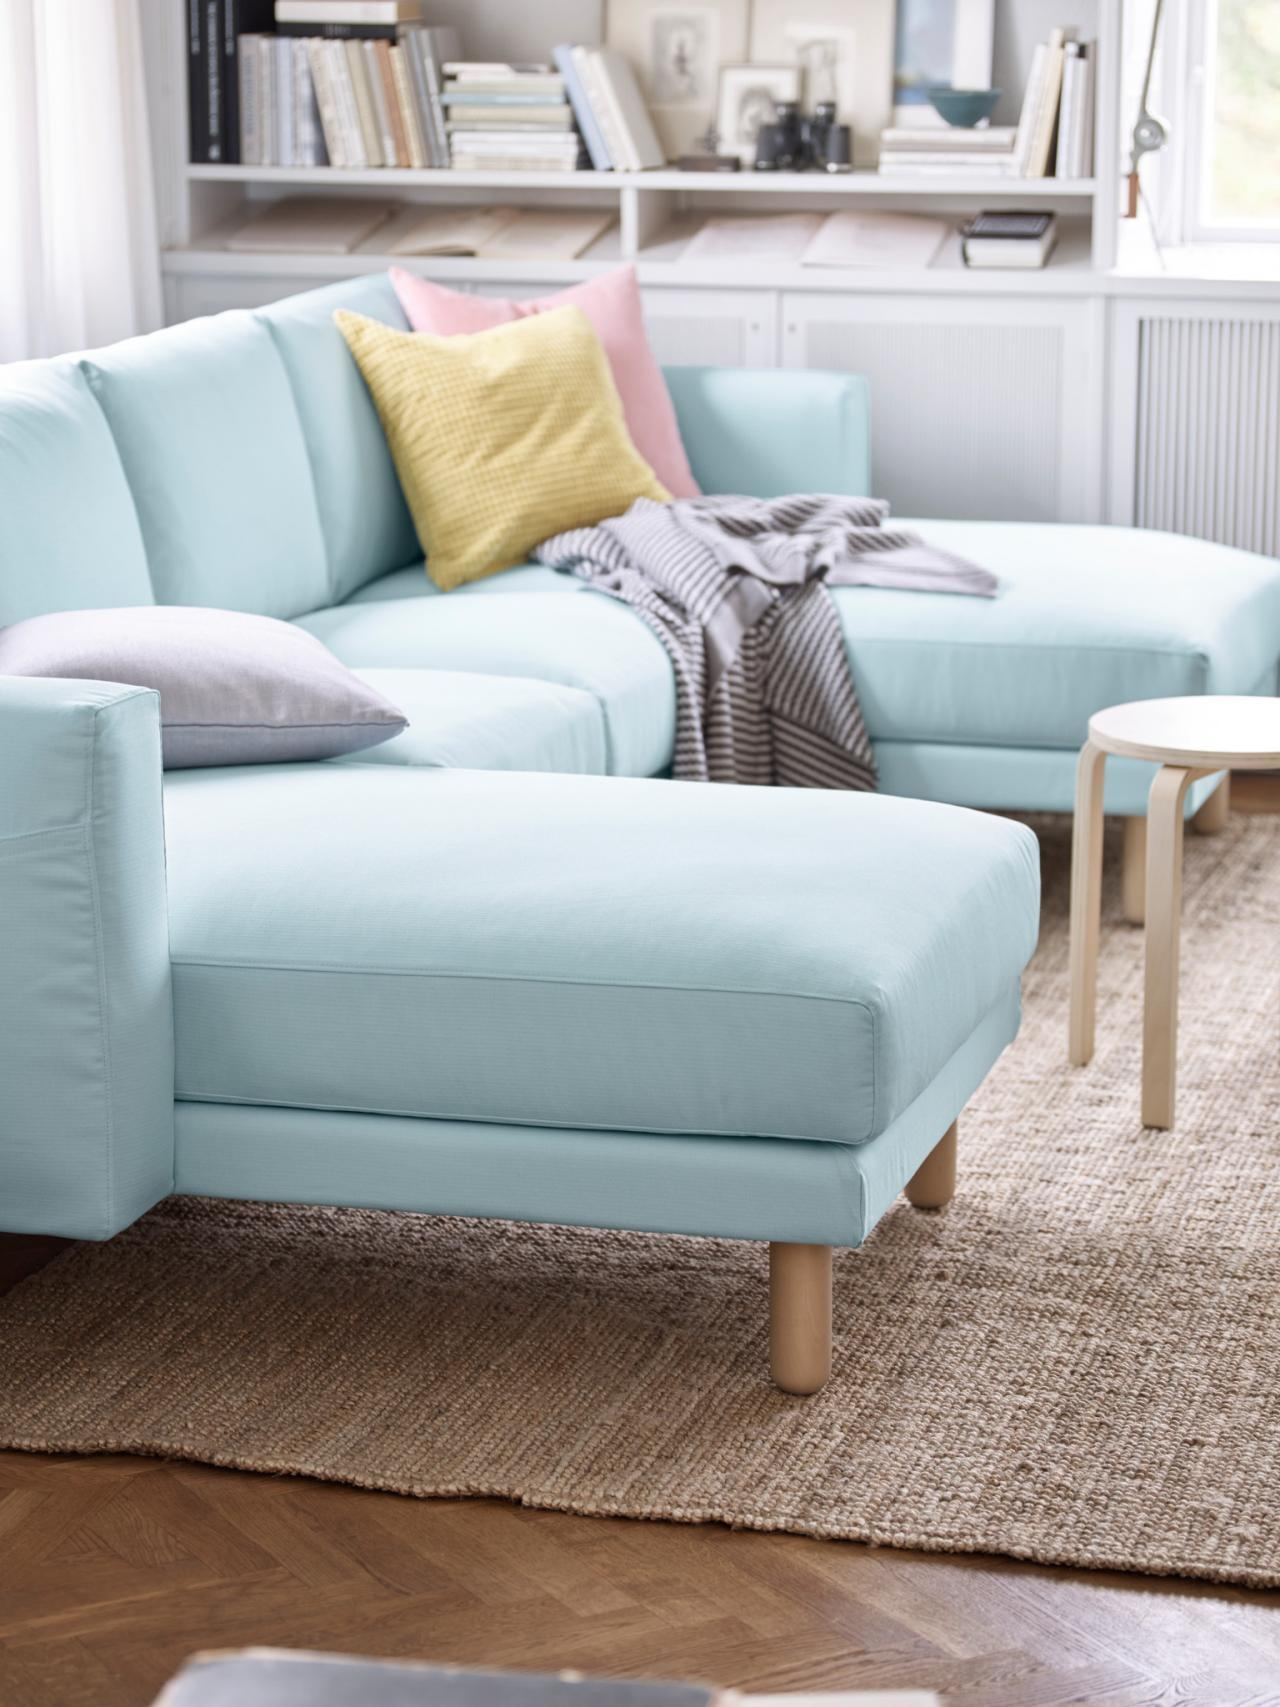 5 Apartment Sized Sofas That Are Lifesavers | Hgtv's Decorating within 6 Foot Sofas